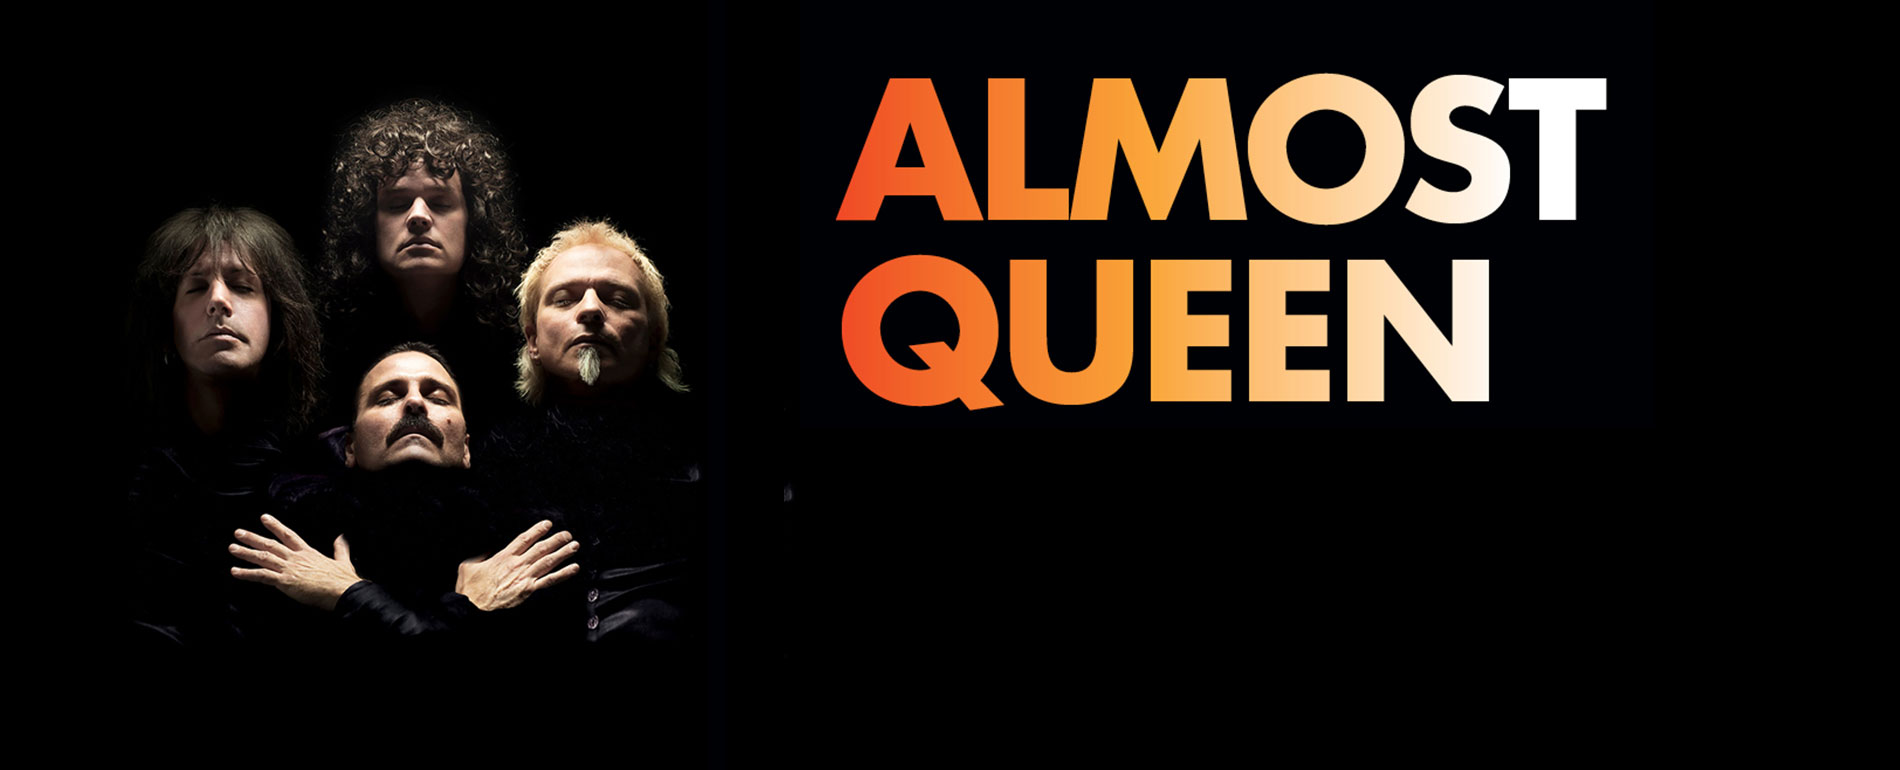 Poconos Concert - Almost Queen - A Tribute to Queen